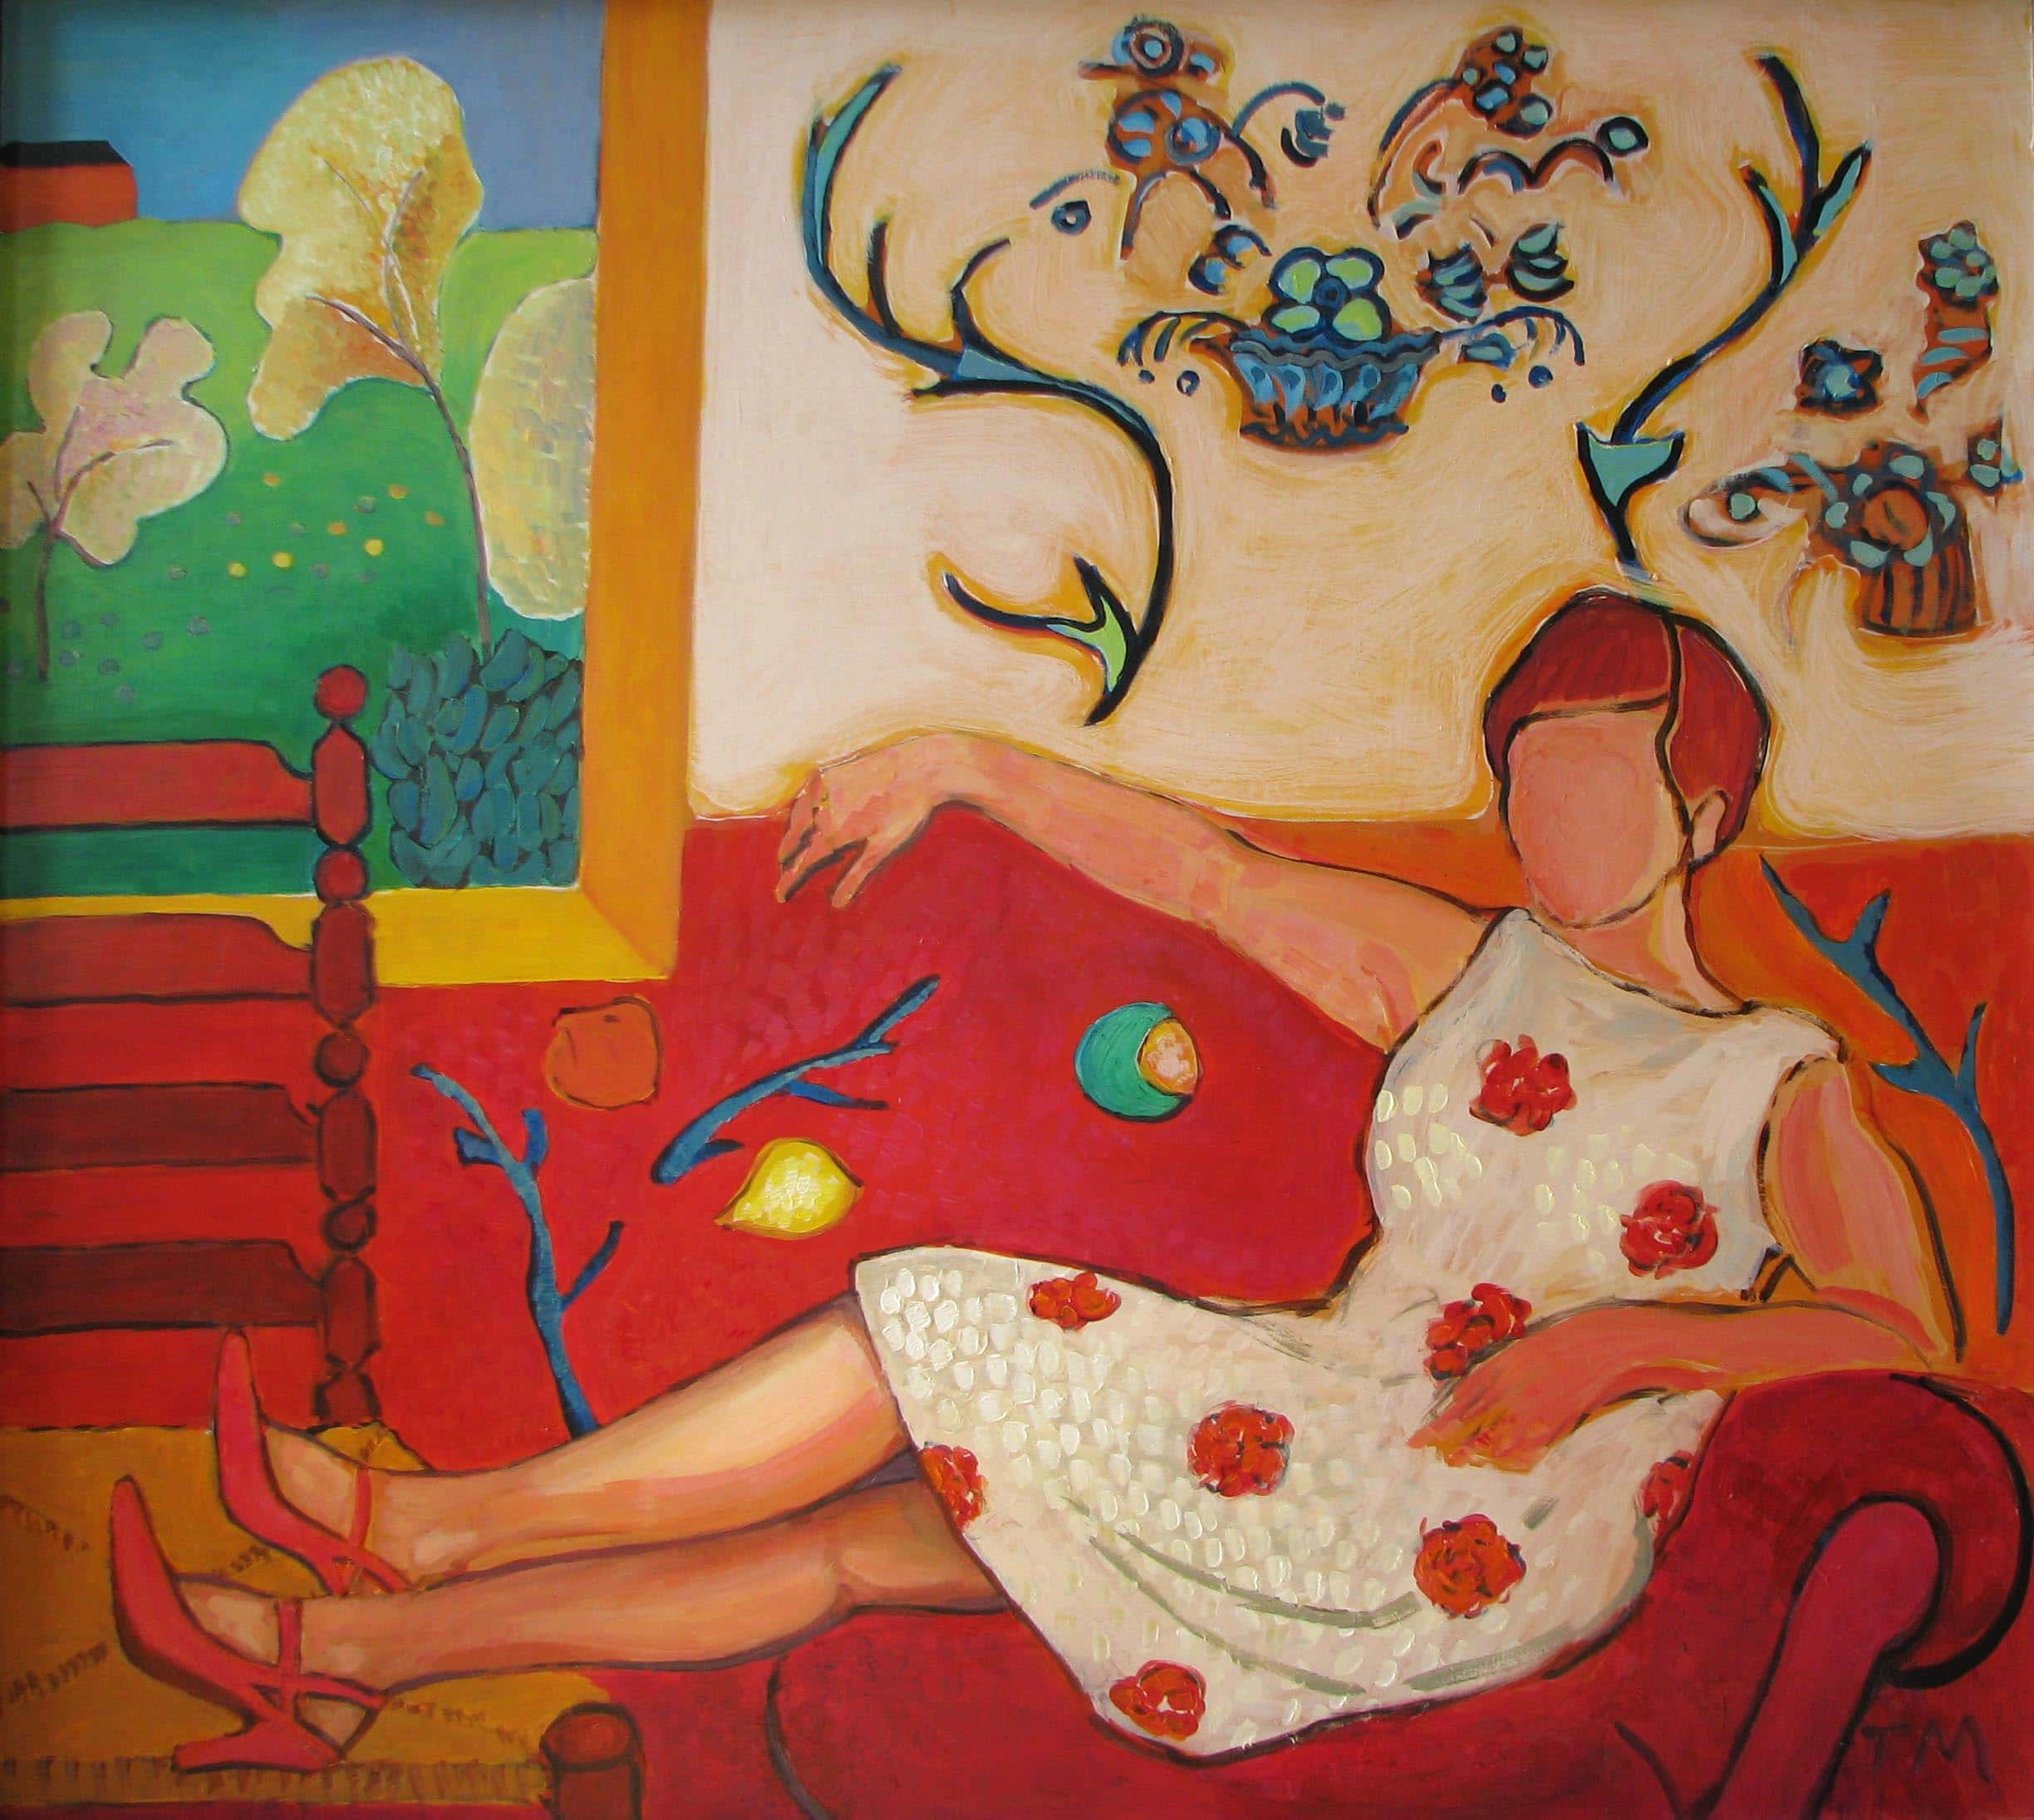 Sunday Morning with Matisse